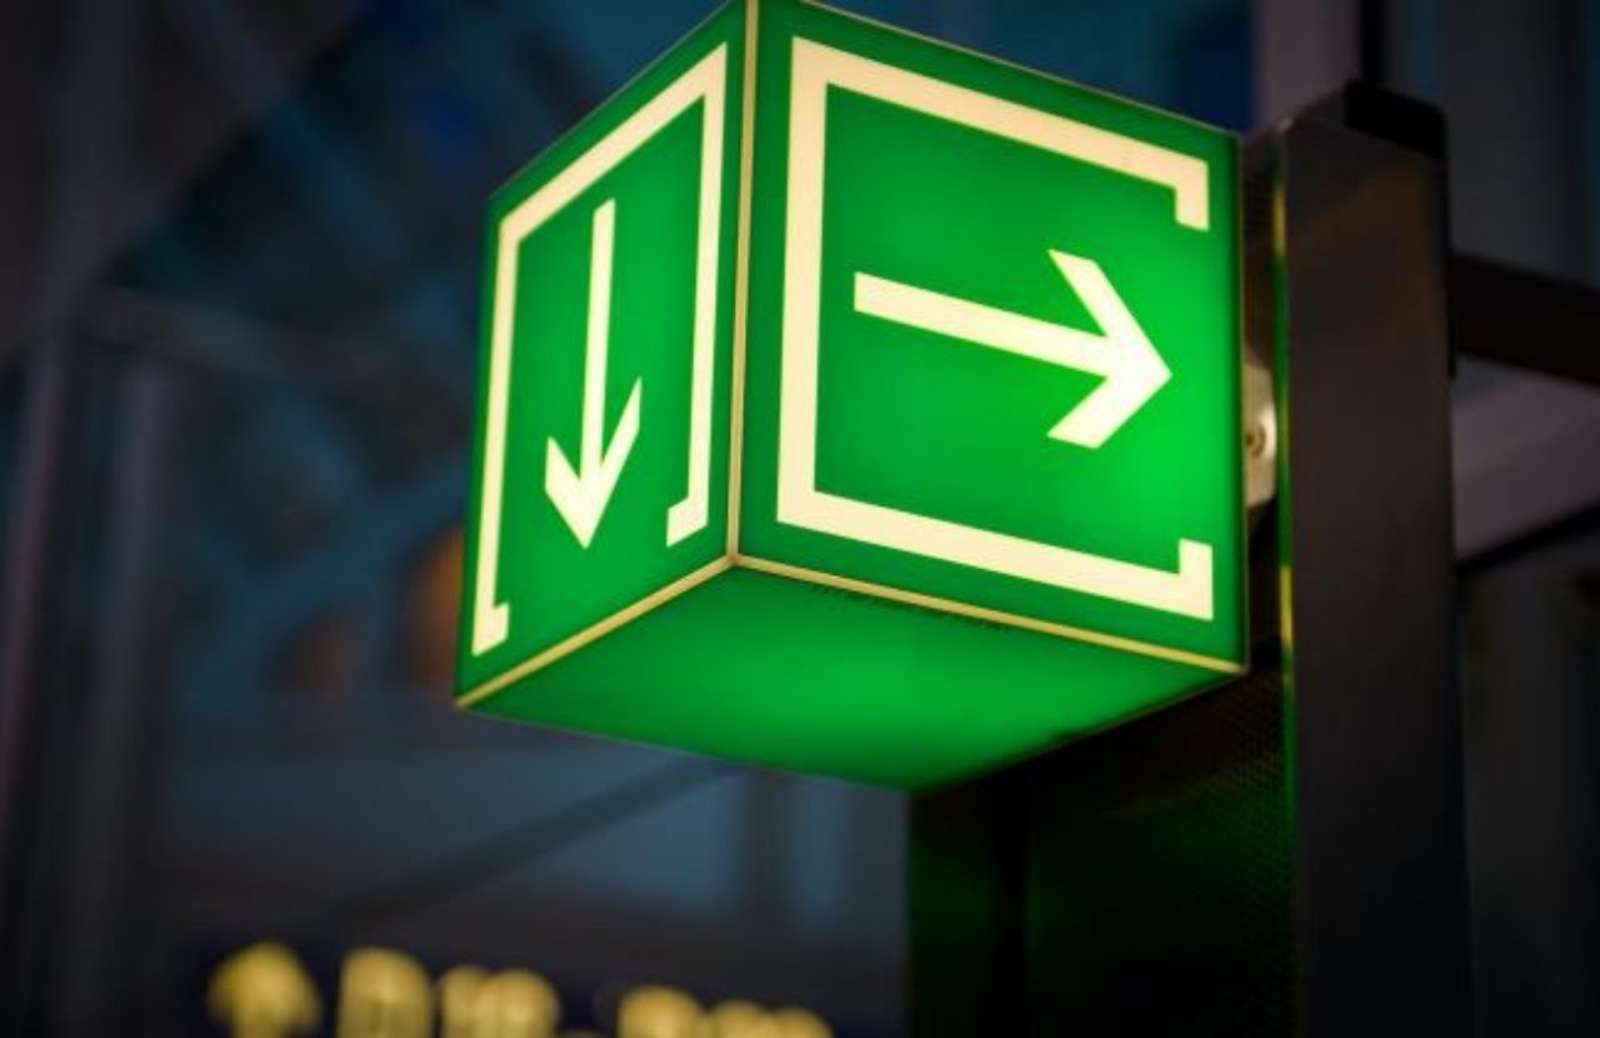 Green neon sign with white arrows pointing right and down